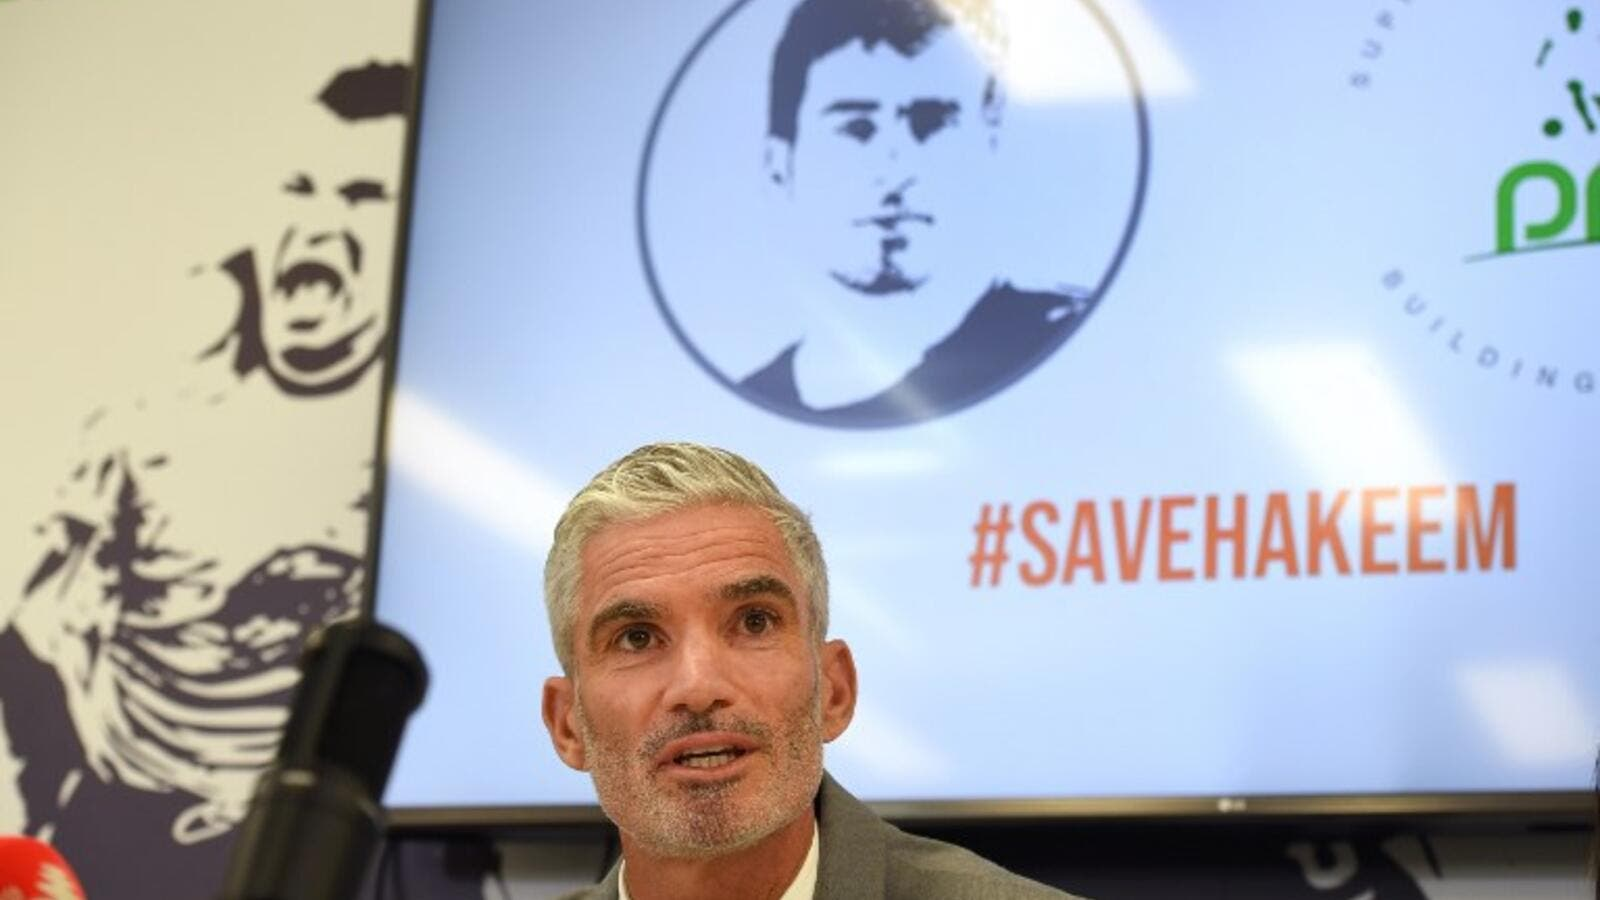 Former Australian football captain Craig Foster speaks during a press conference calling for the release of former Bahrain national footballer Hakeem Alaraibi from a Thailand detention centre